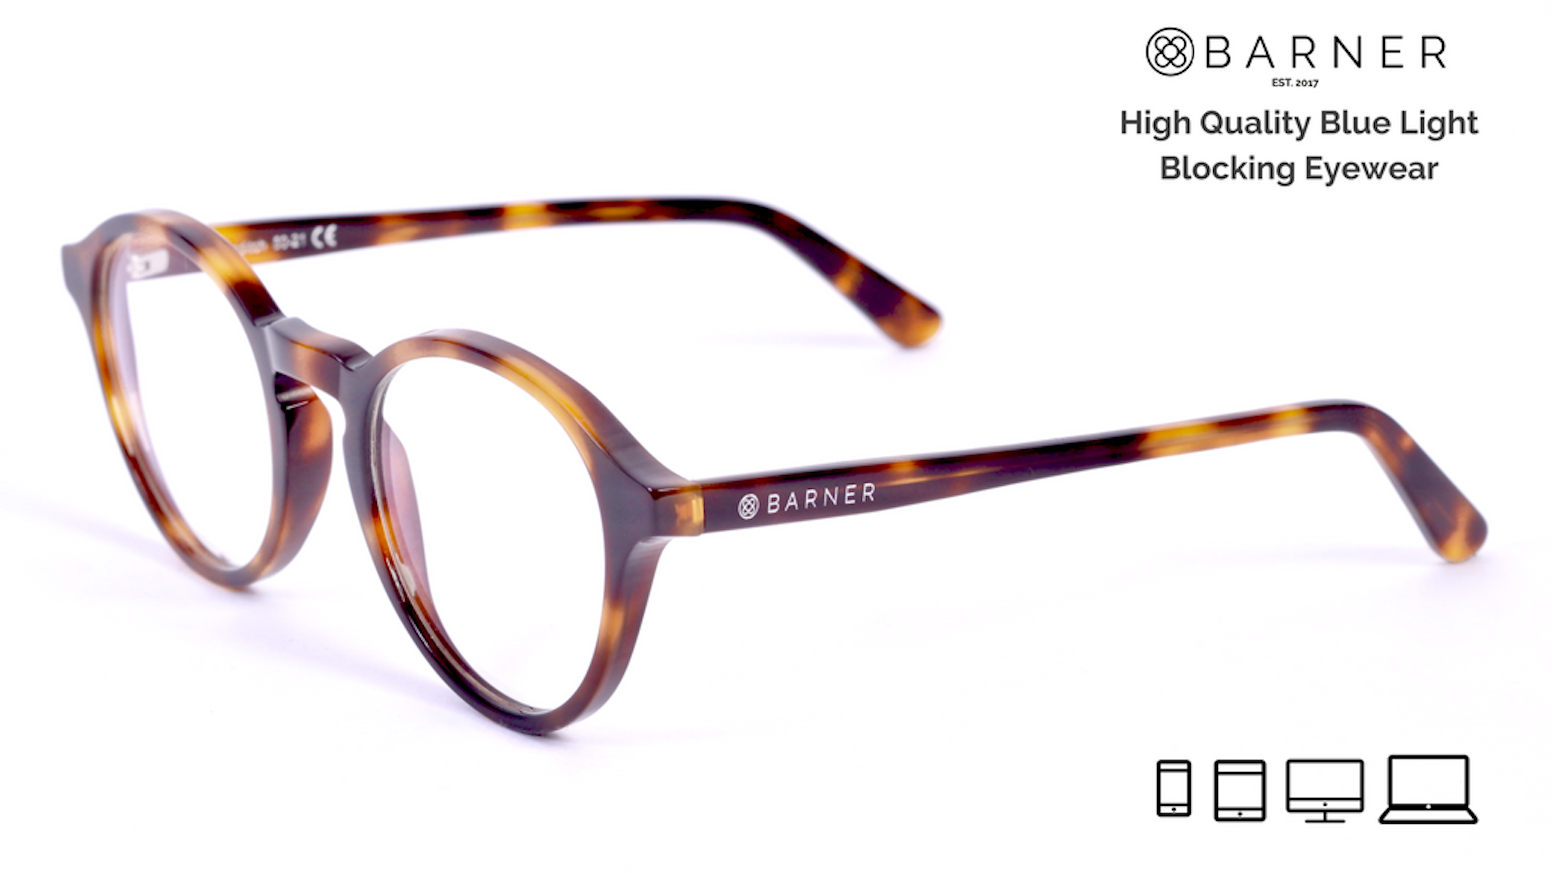 dab7db1f02 High quality eyewear to protect your eyes from Blue Light providing you a  better sleep and